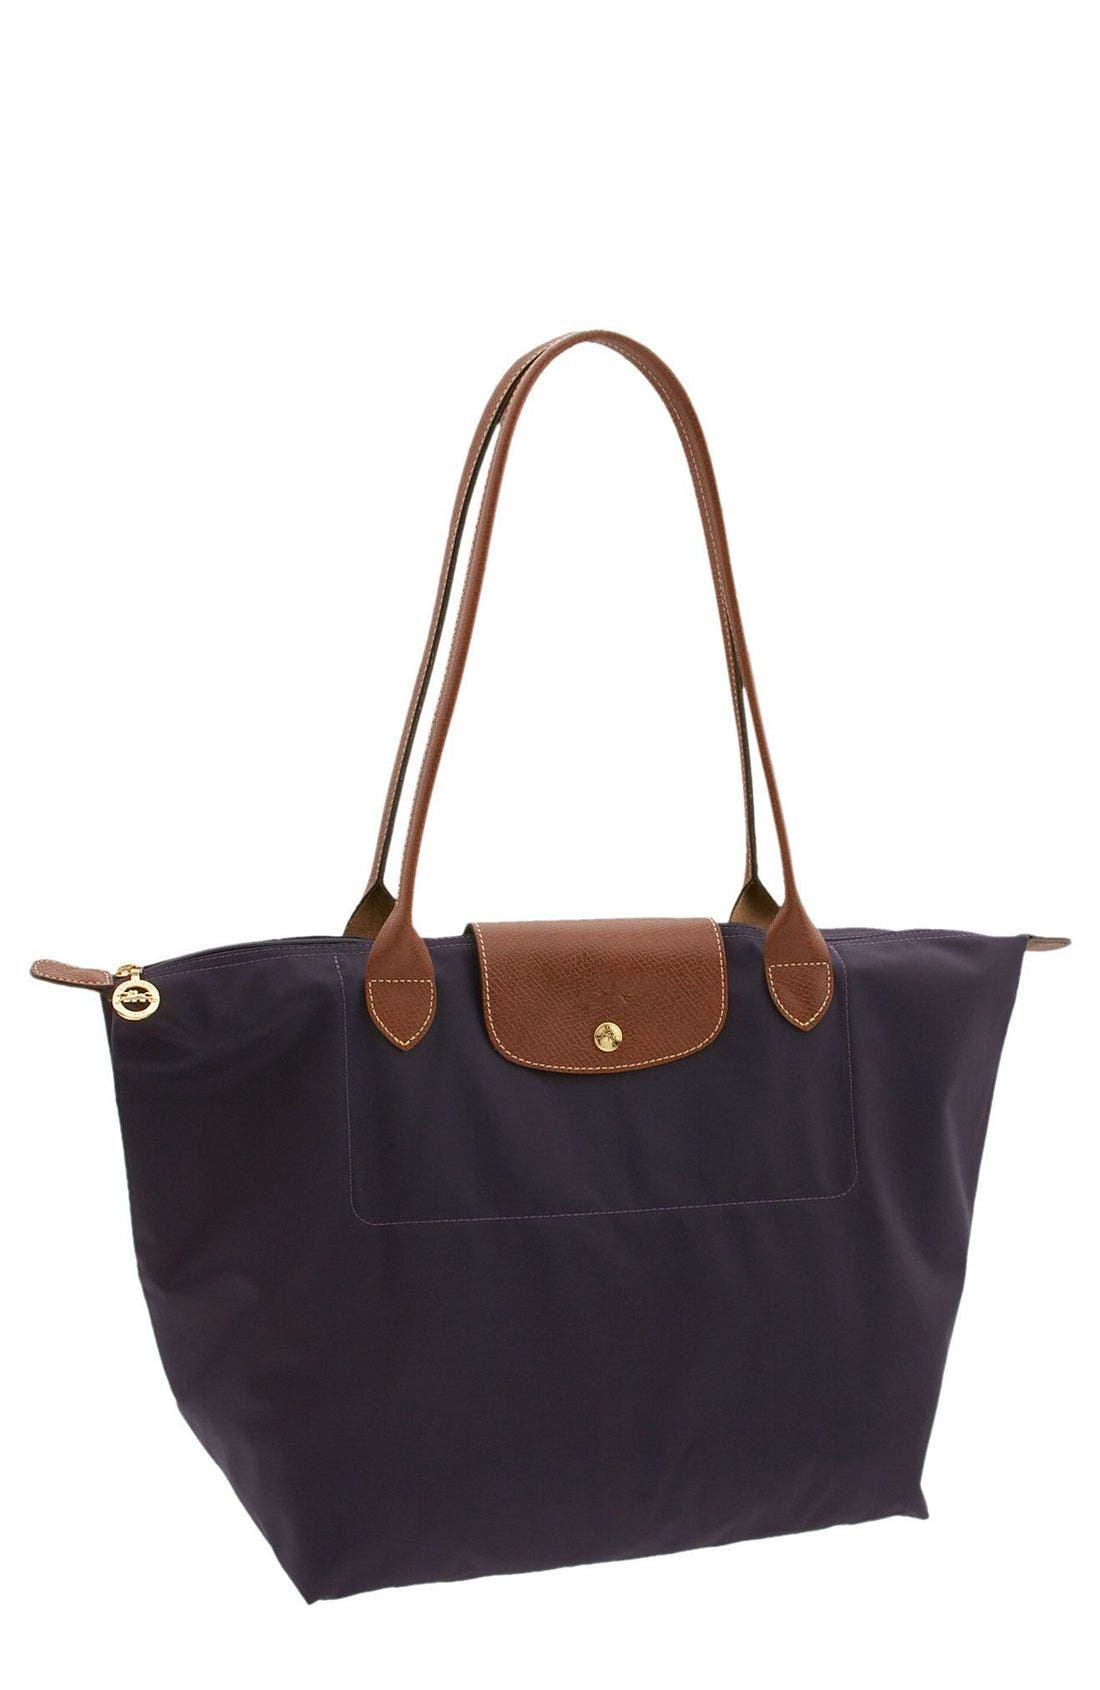 Alternate Image 1 Selected - Longchamp 'Le Pliage - Large' Tote Bag